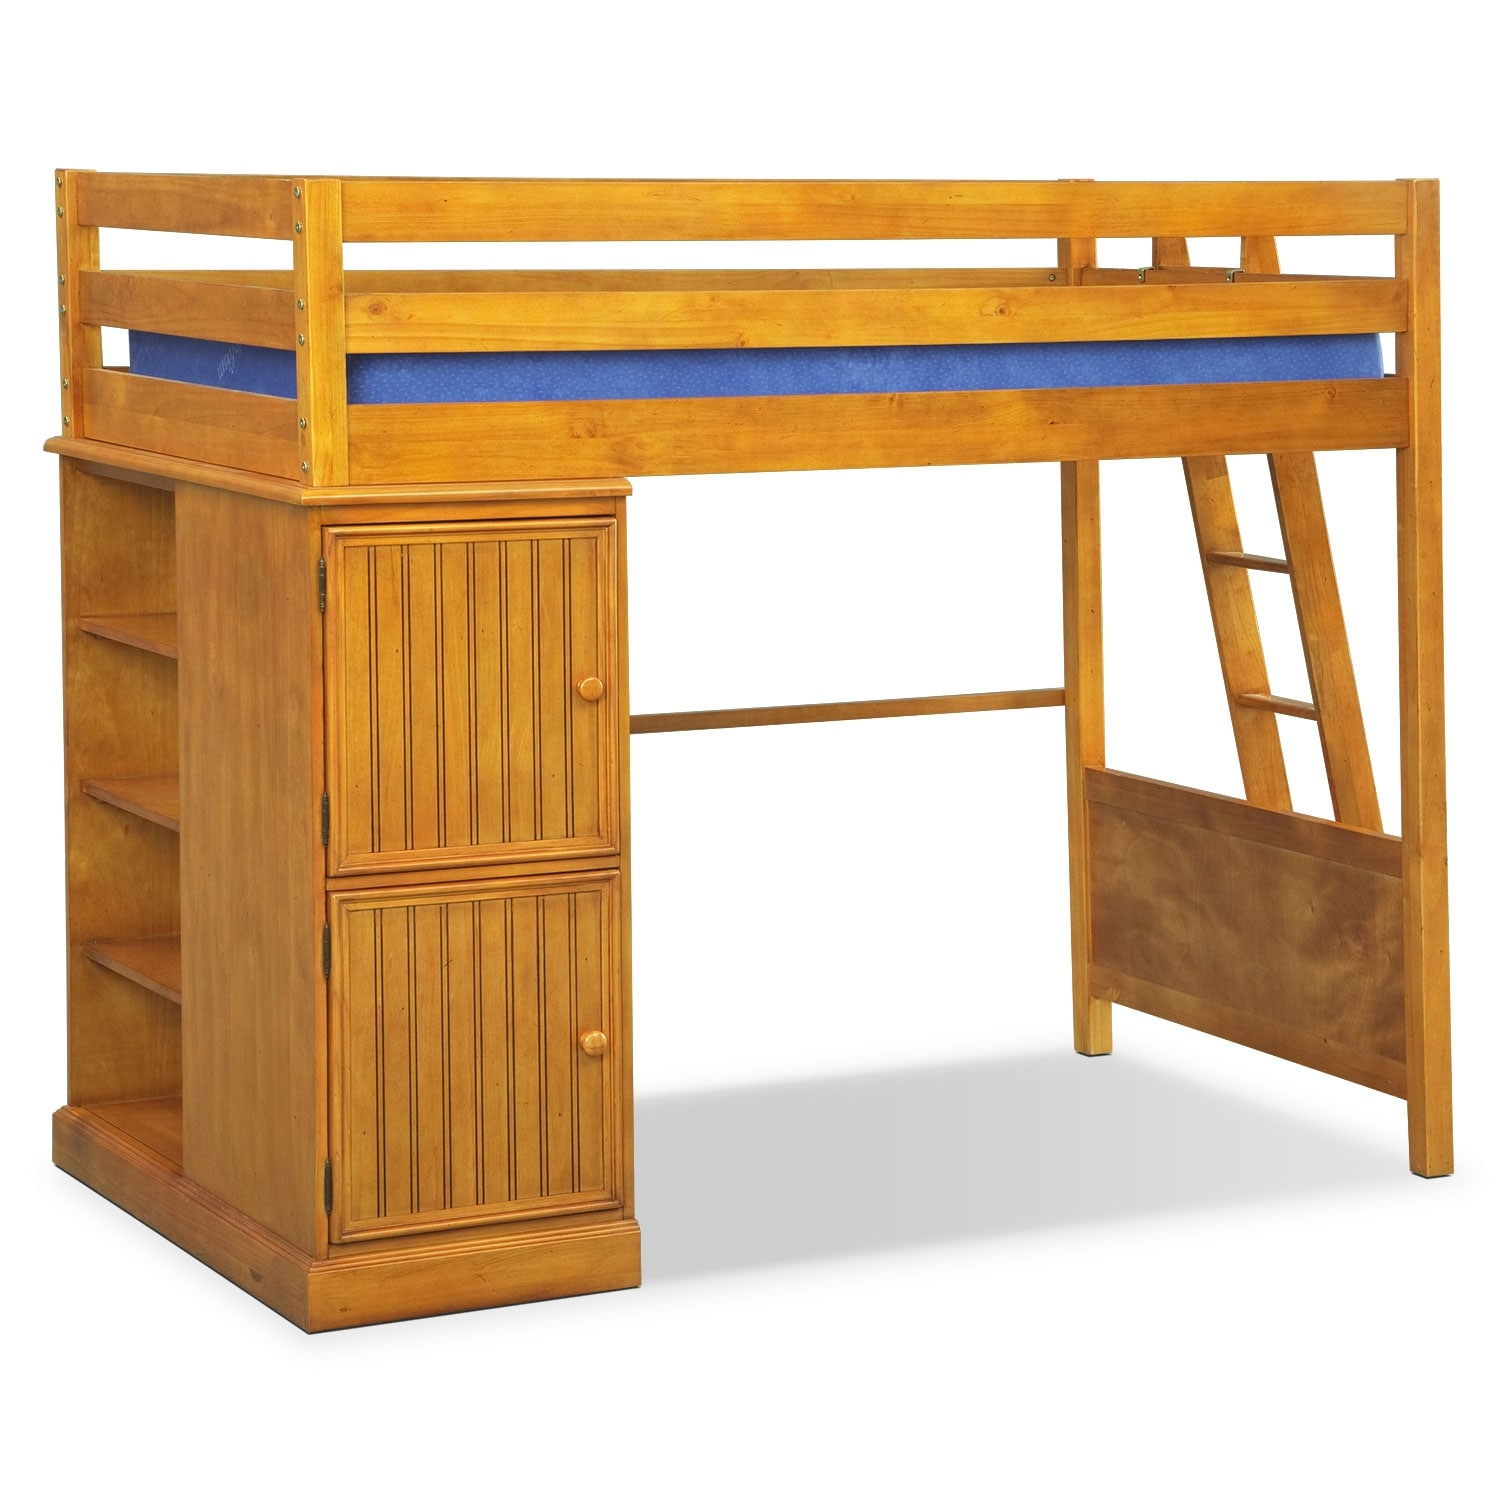 Kids Furniture - Colorworks Loft Bed